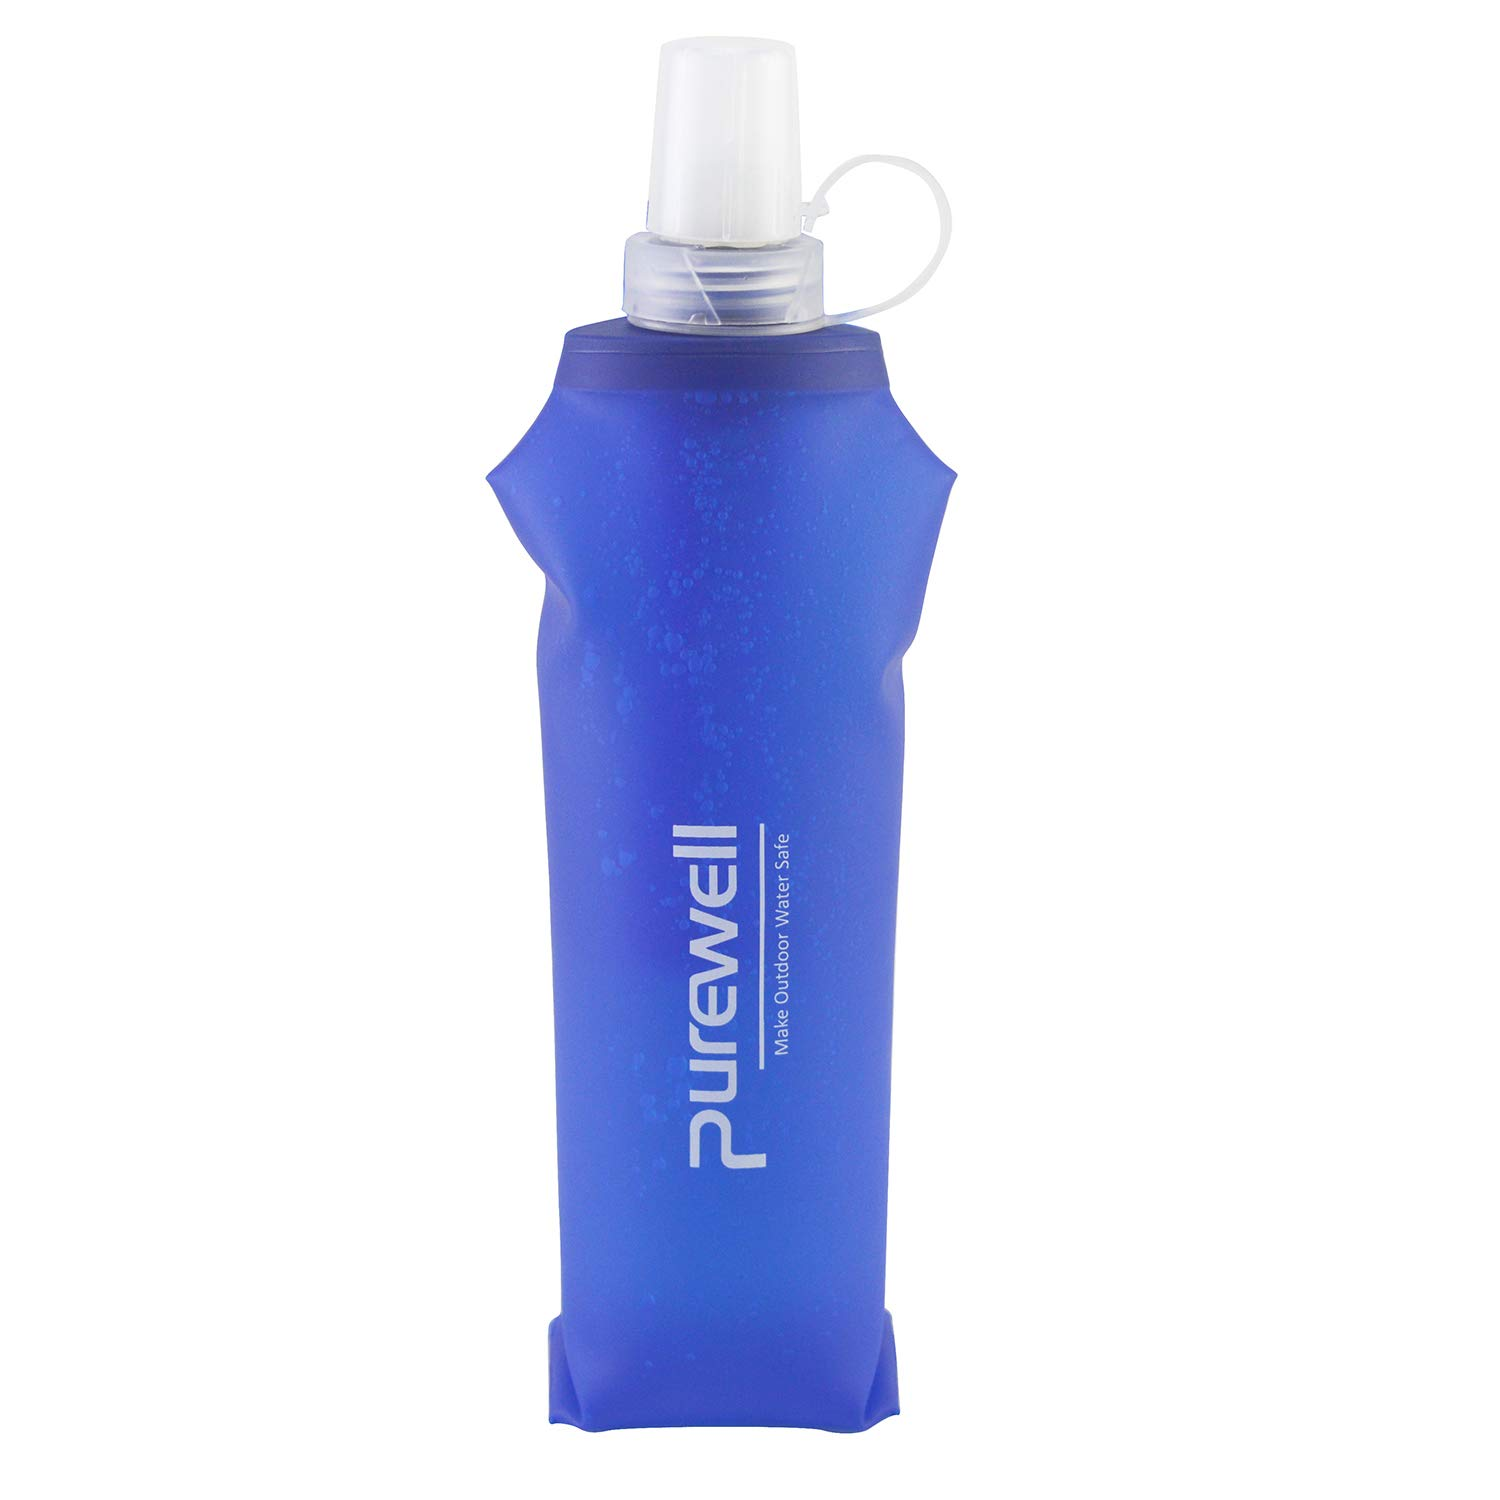 6dea46ca80 Amazon.com : Purewell Soft TPU Collapsible Water Filter Container BPA Free  Outdoor Filtered Water Bag for Sport Camping and Hiking - Blue : Sports &  ...